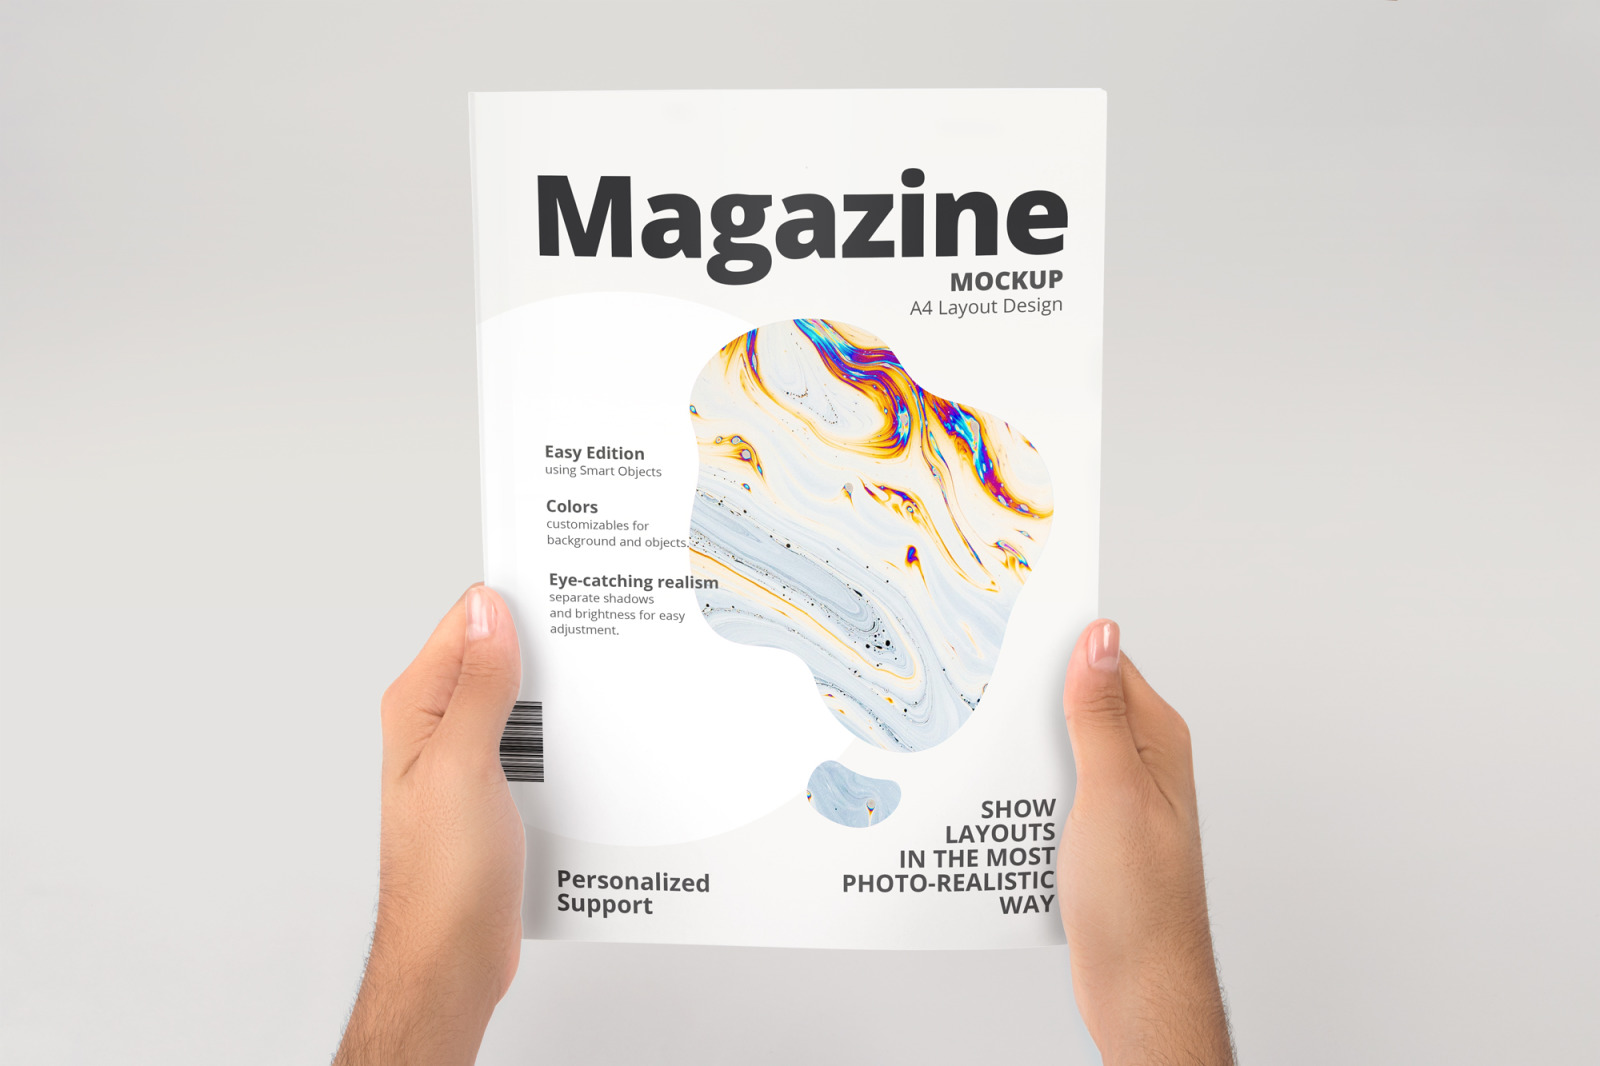 A4 Magazine Mockup In Stationery Mockups On Yellow Images Creative Store